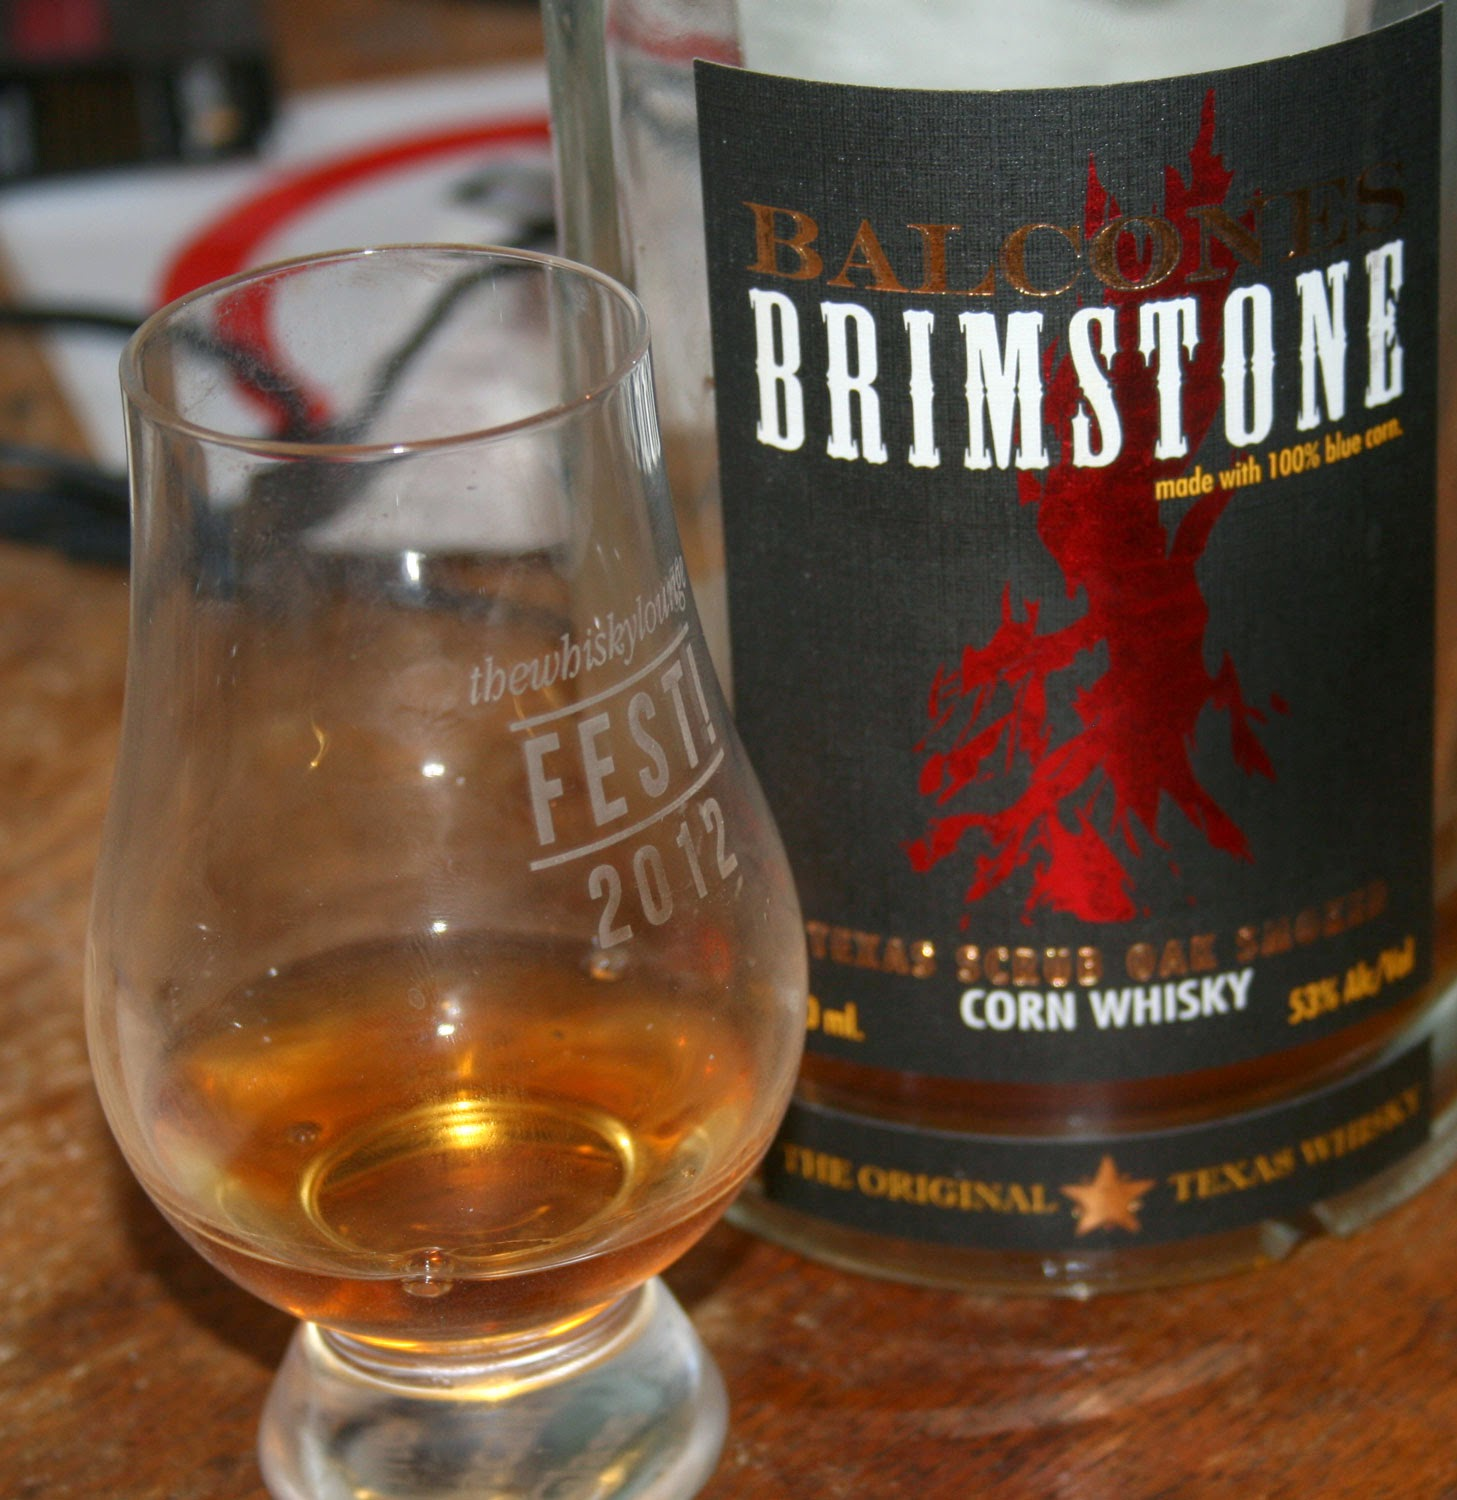 My chosen dram